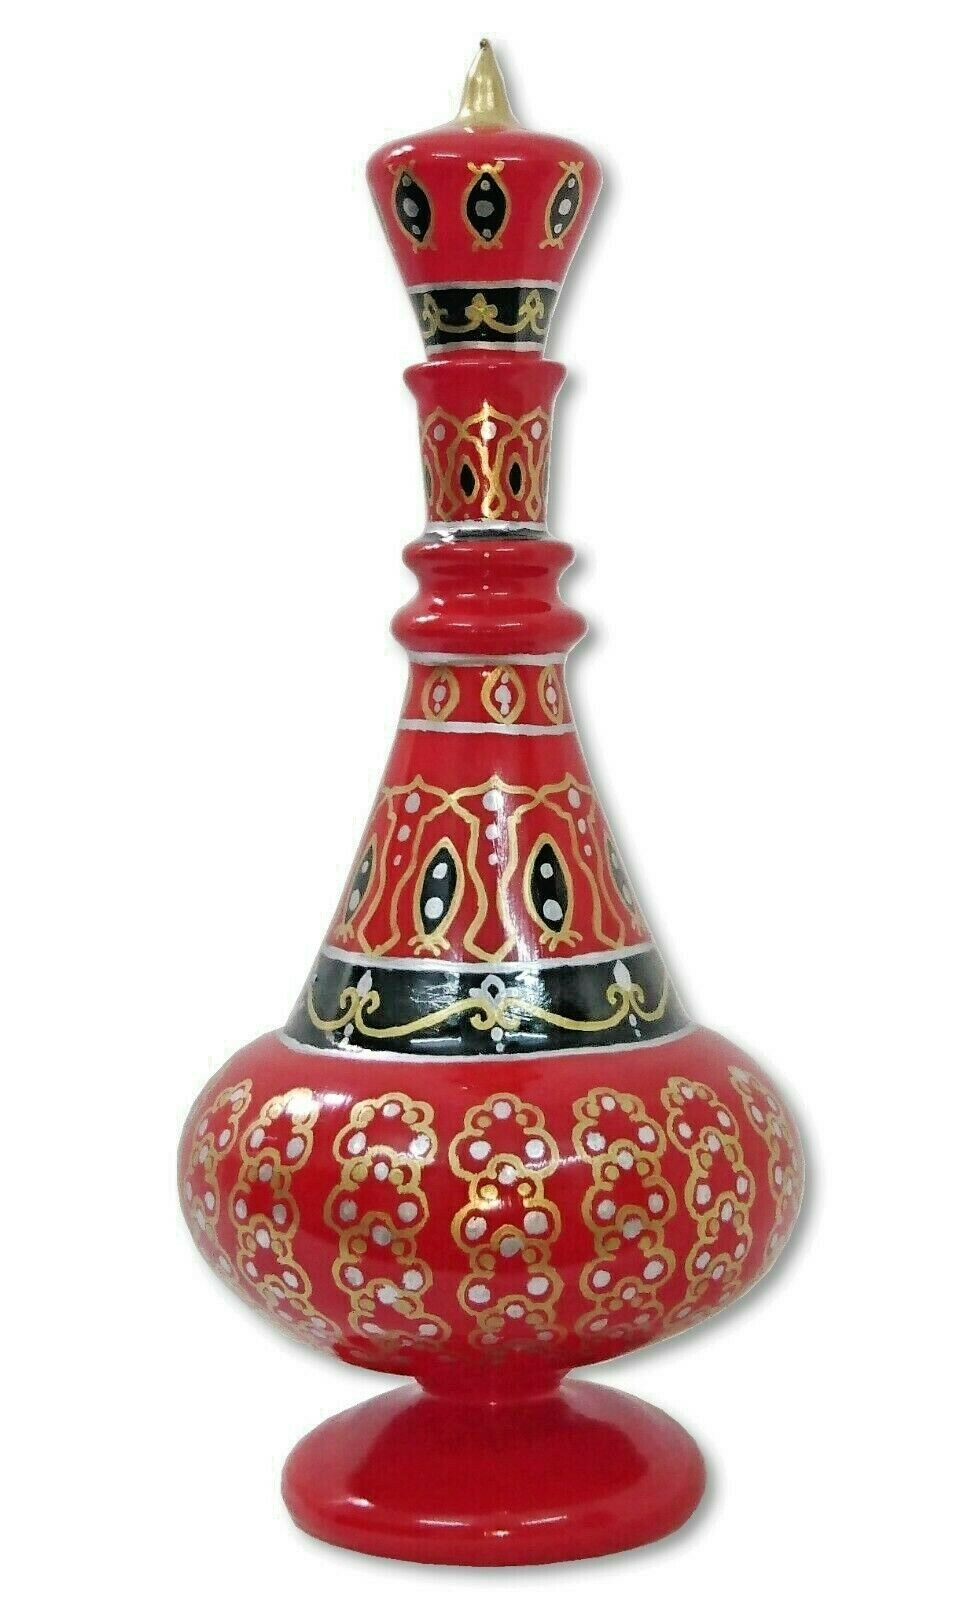 LJ498 I Dream of Jeannie Hand Painted MouthBlown Glass Reunion Red/Black Bottle